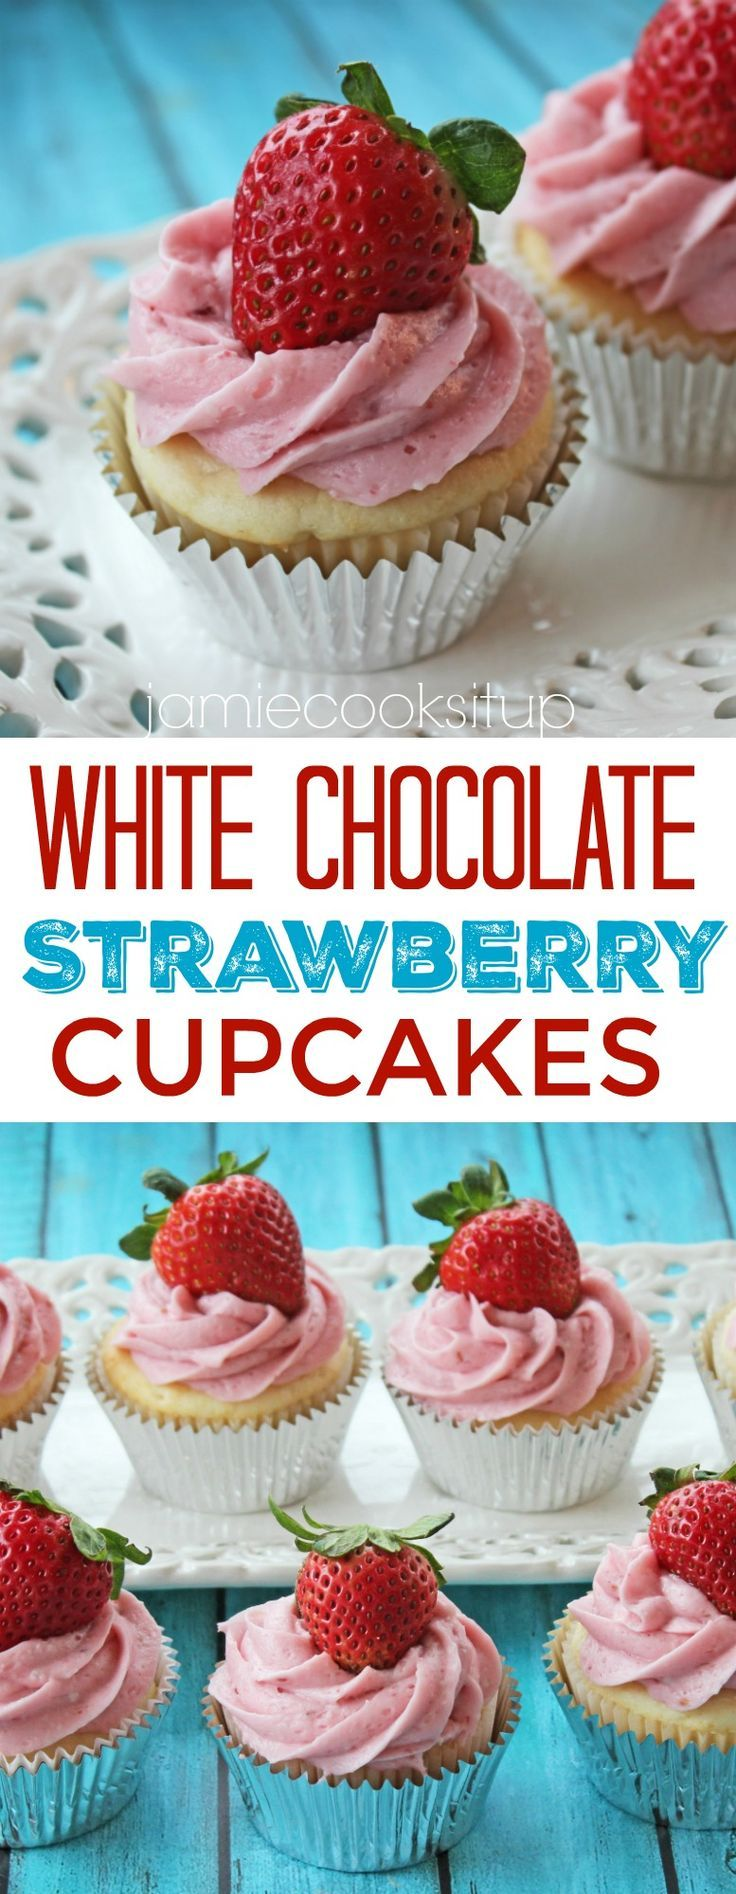 White Chocolate Strawberry Cupcakes | Jamie Cooks It Up - Family Favorite Food and Recipes